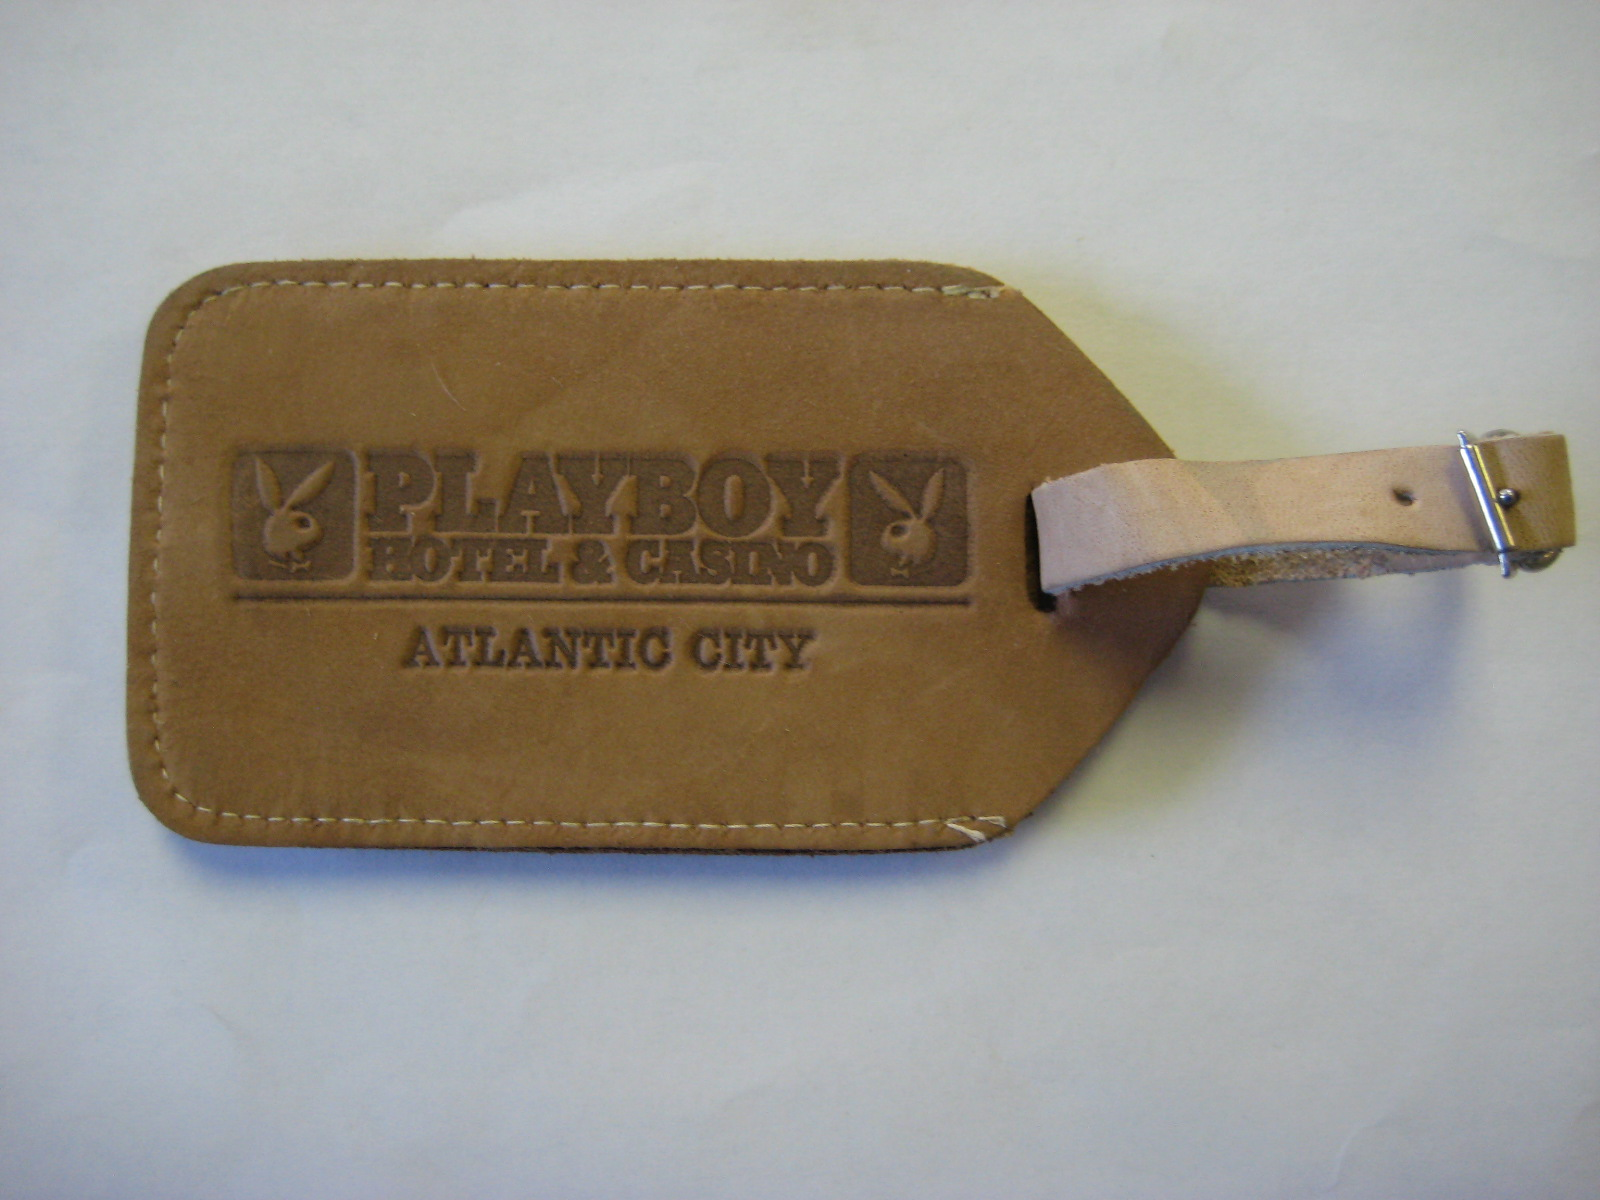 Playboy Atlantic City Leather luggage tag